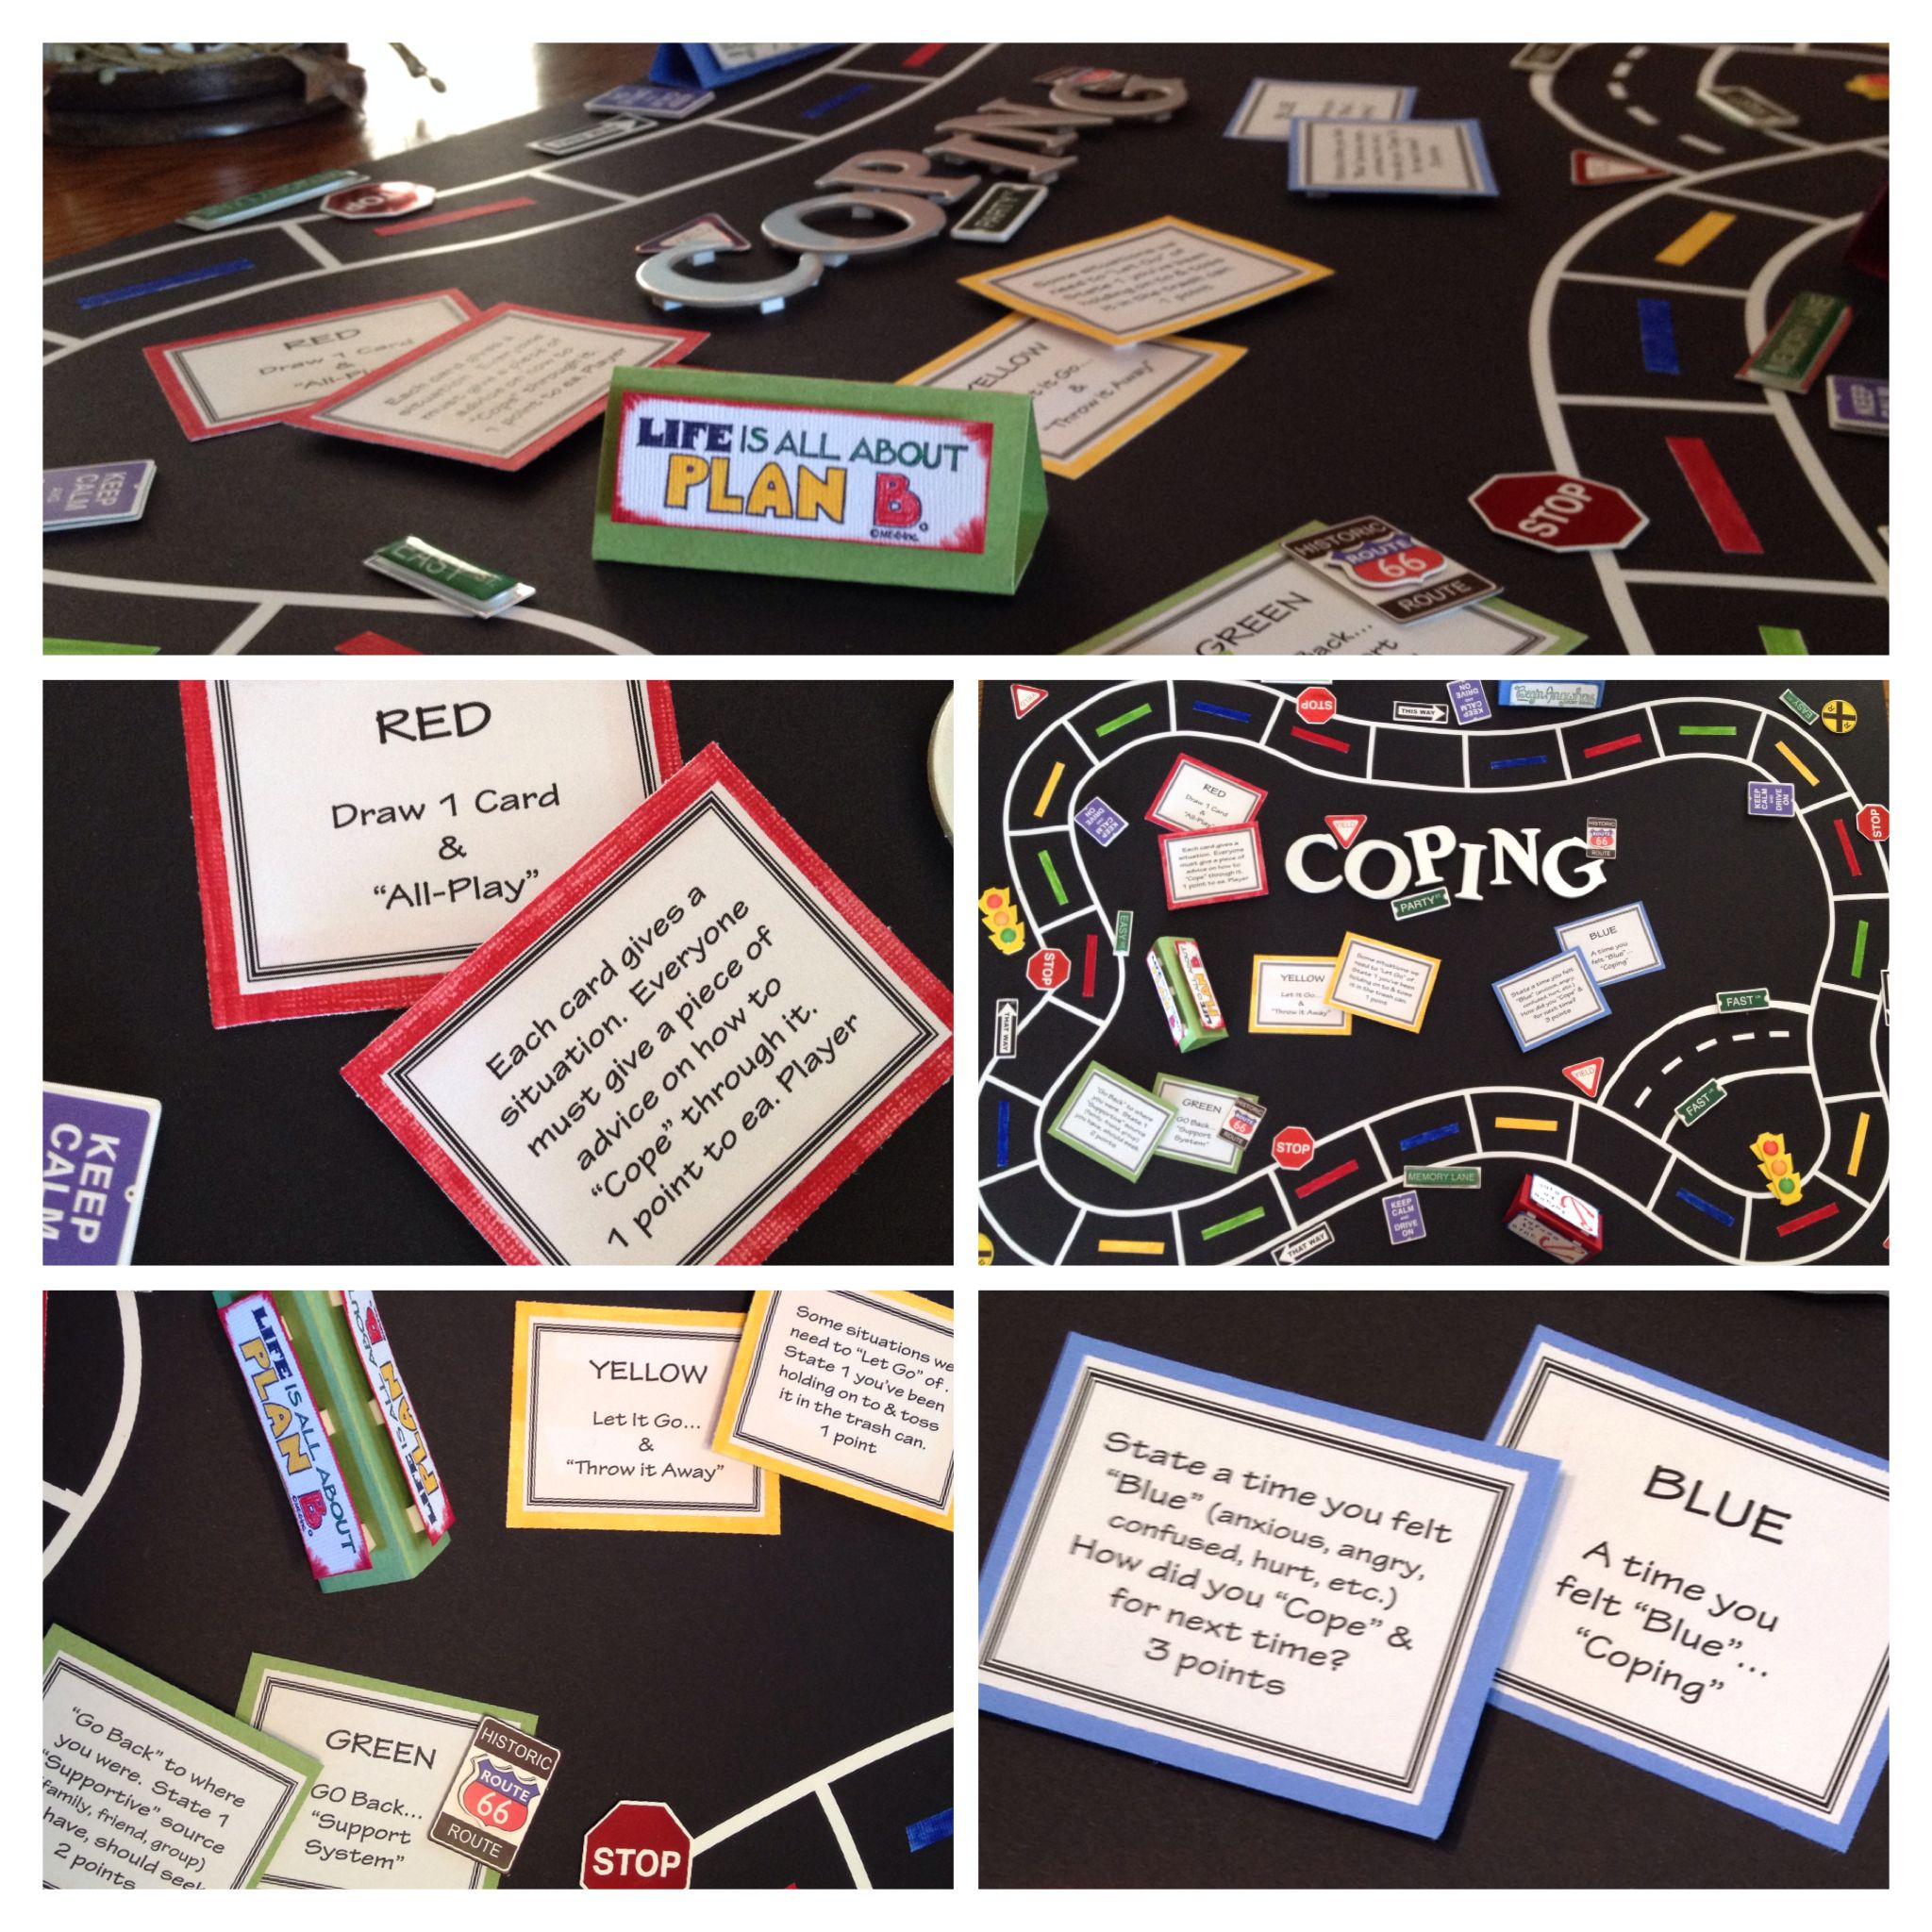 Coping Board Game For Mental Health Clinical Patients Loved It Amp Found It Very The Utic